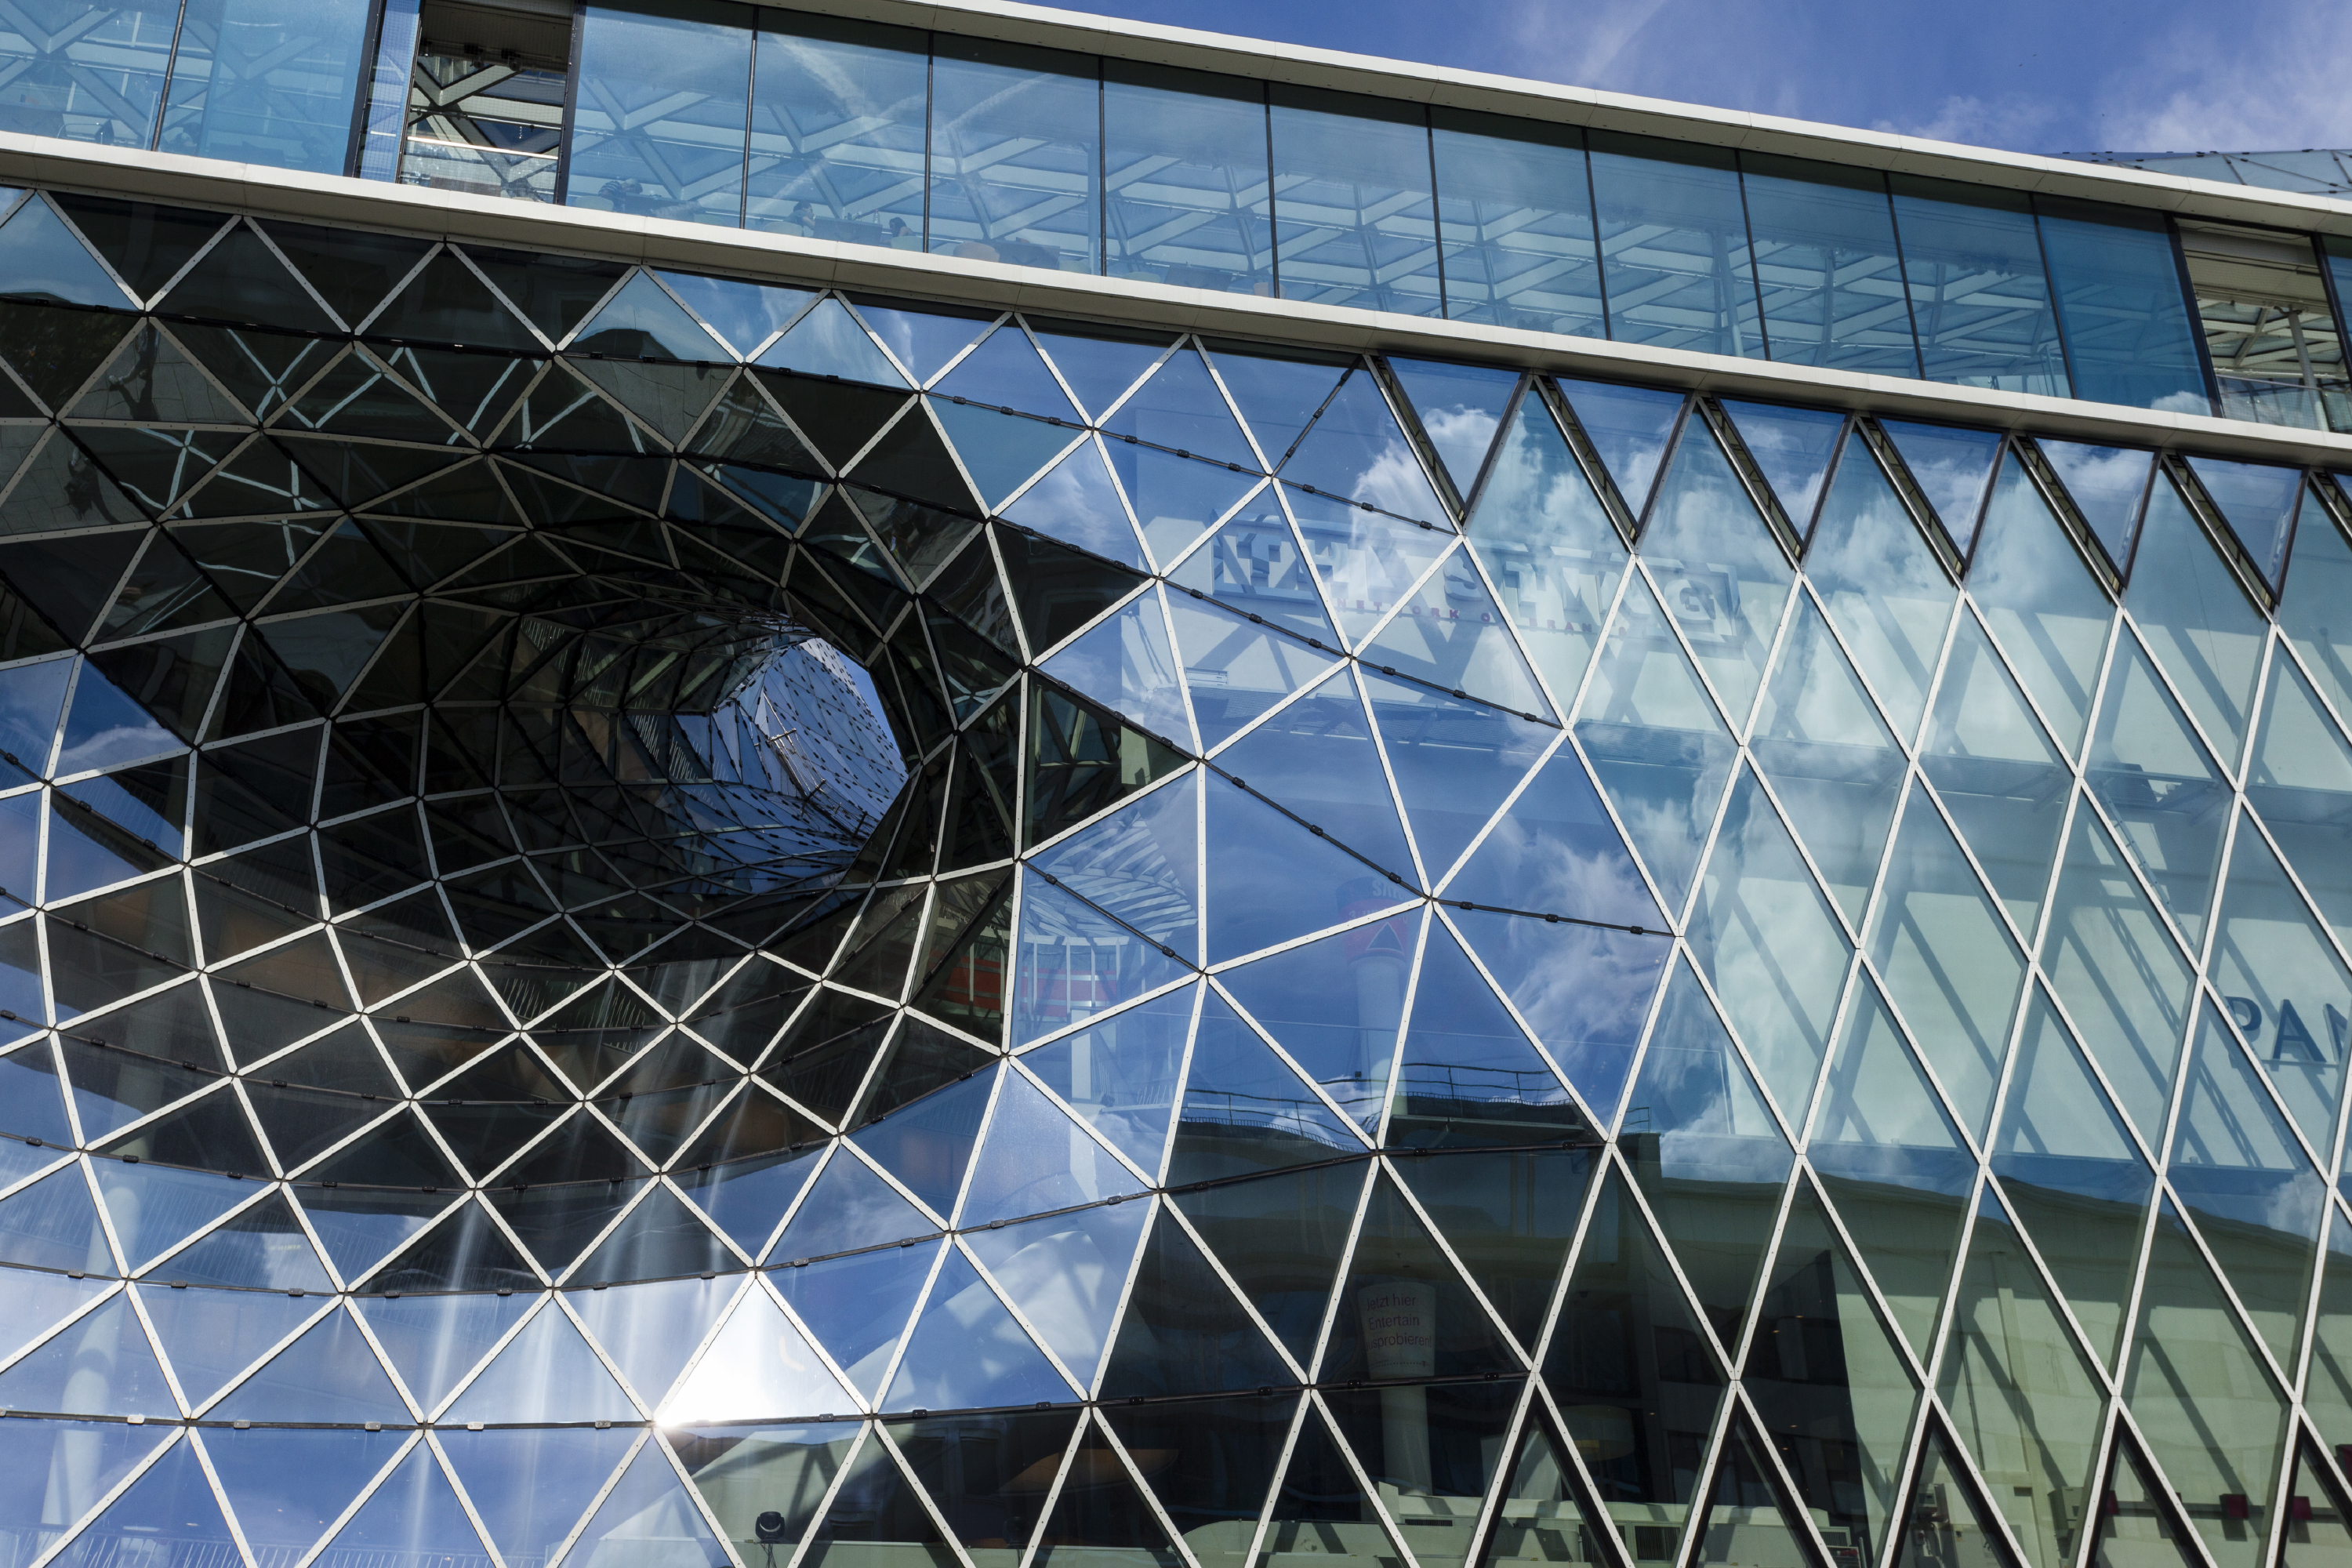 Glass facade of an exhibition hall